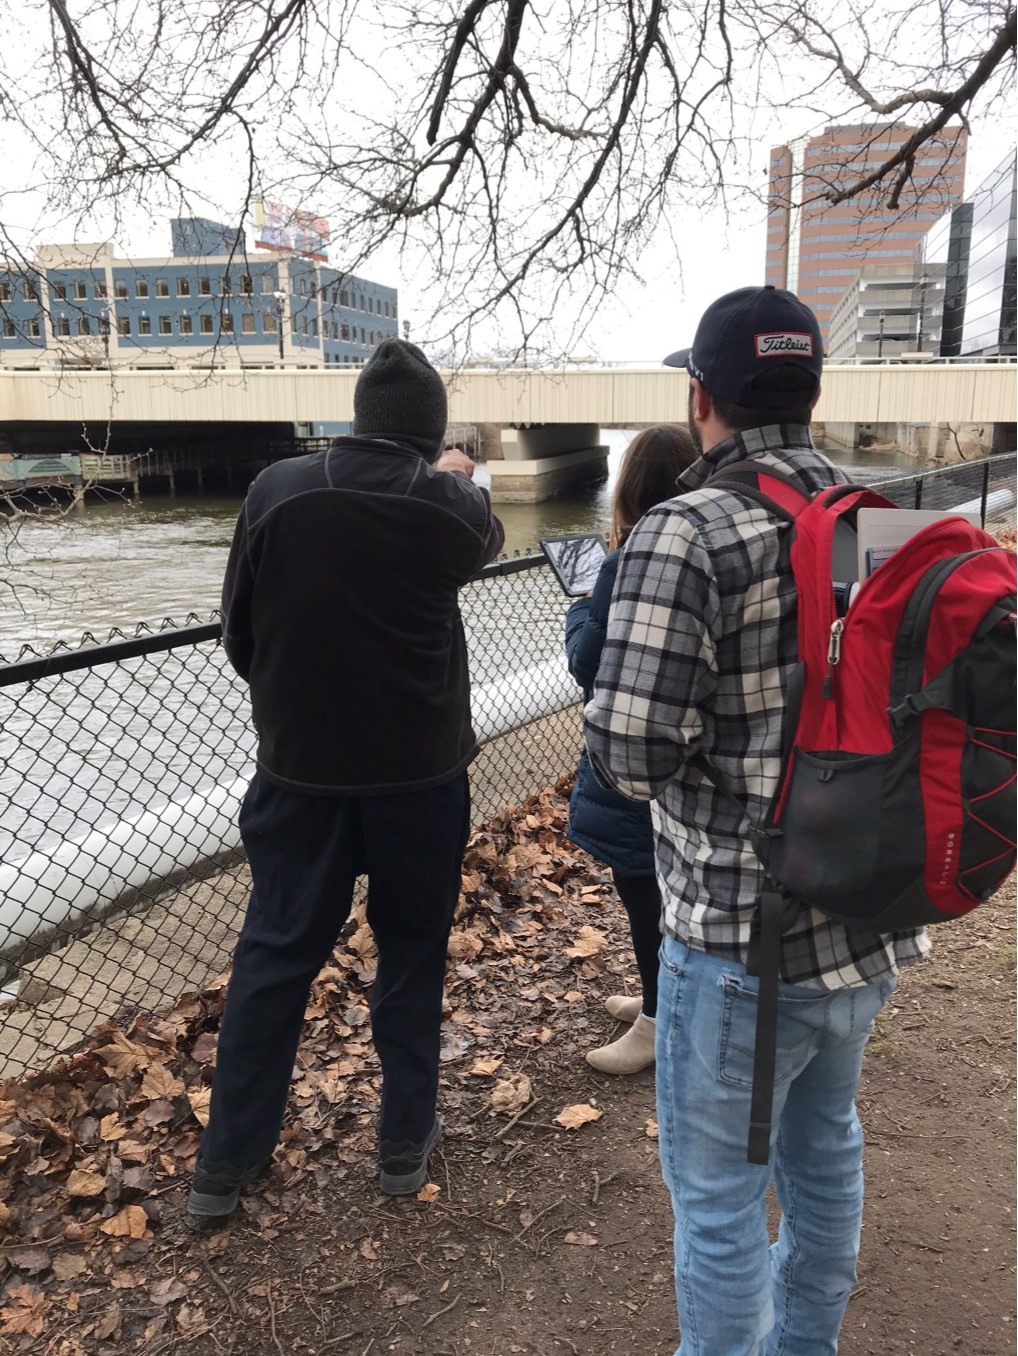 Three teachers stand next to the Grand River in winter, with city buildings in the background.